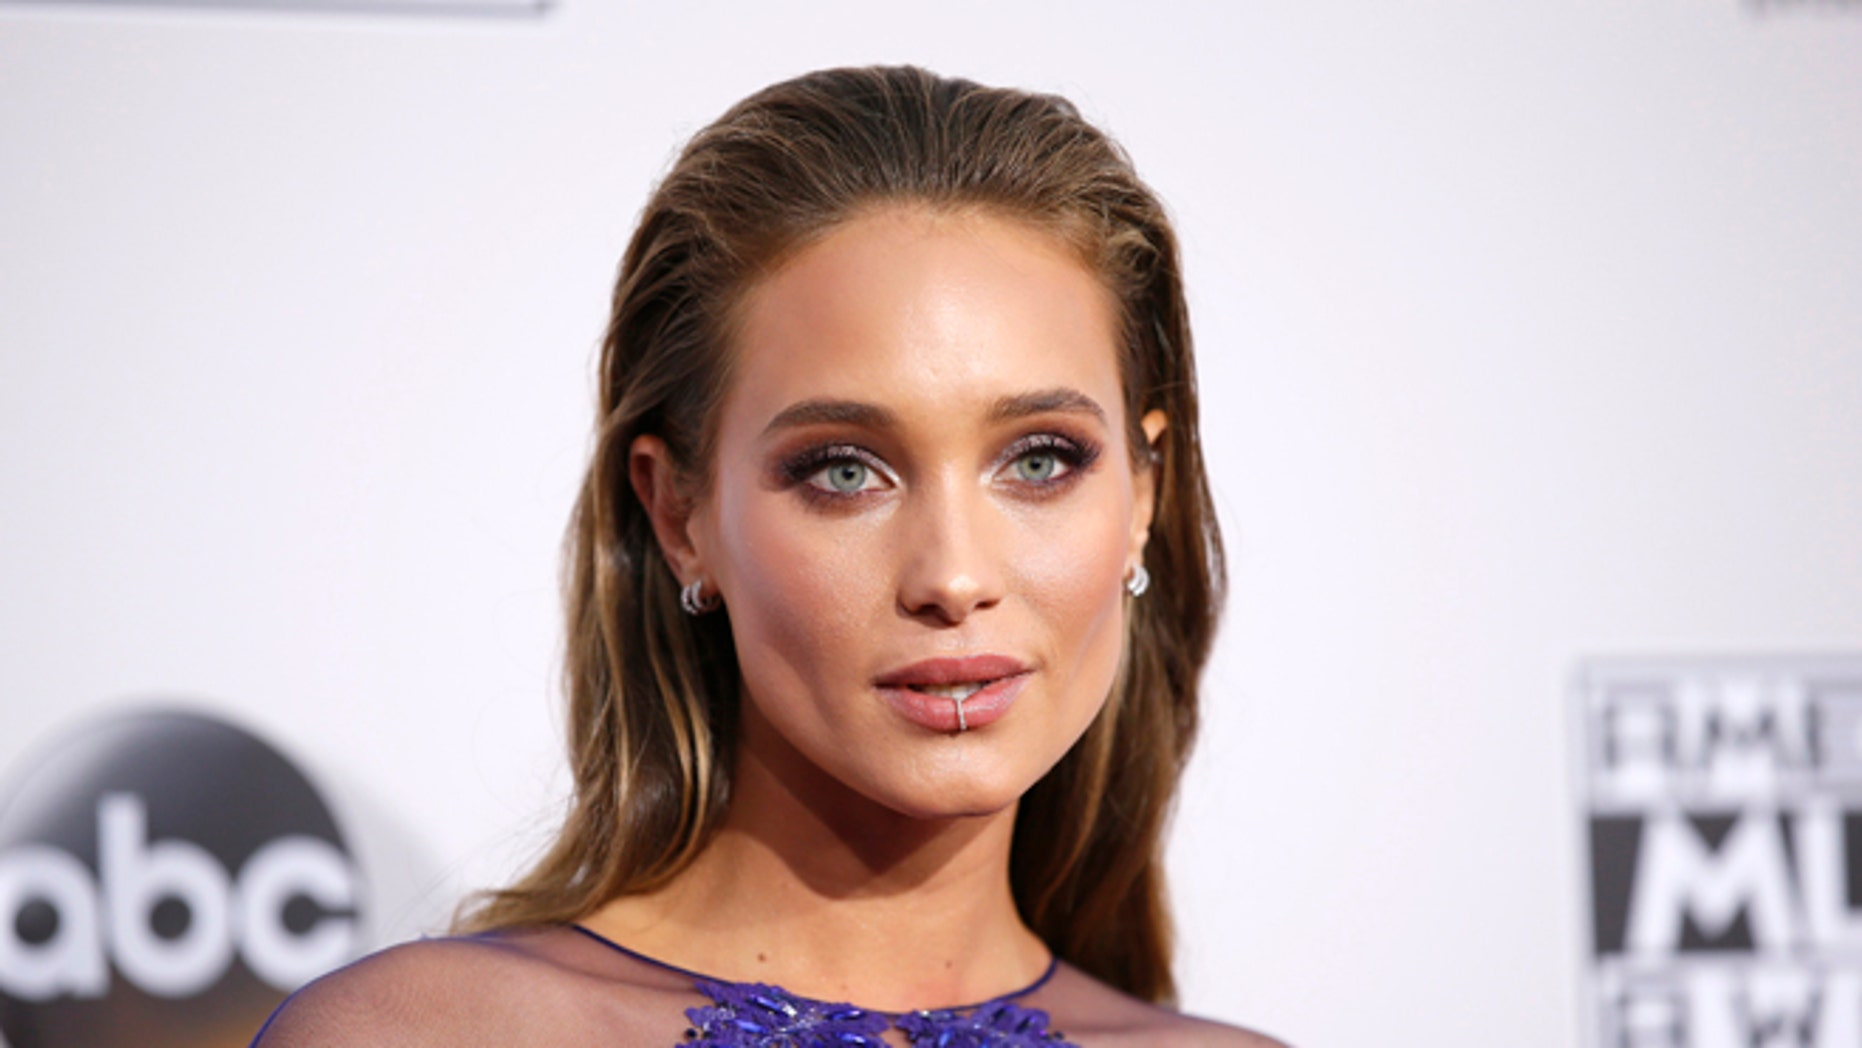 Hannah Davis got stuck in an elevator at a Sports Illustrated party.